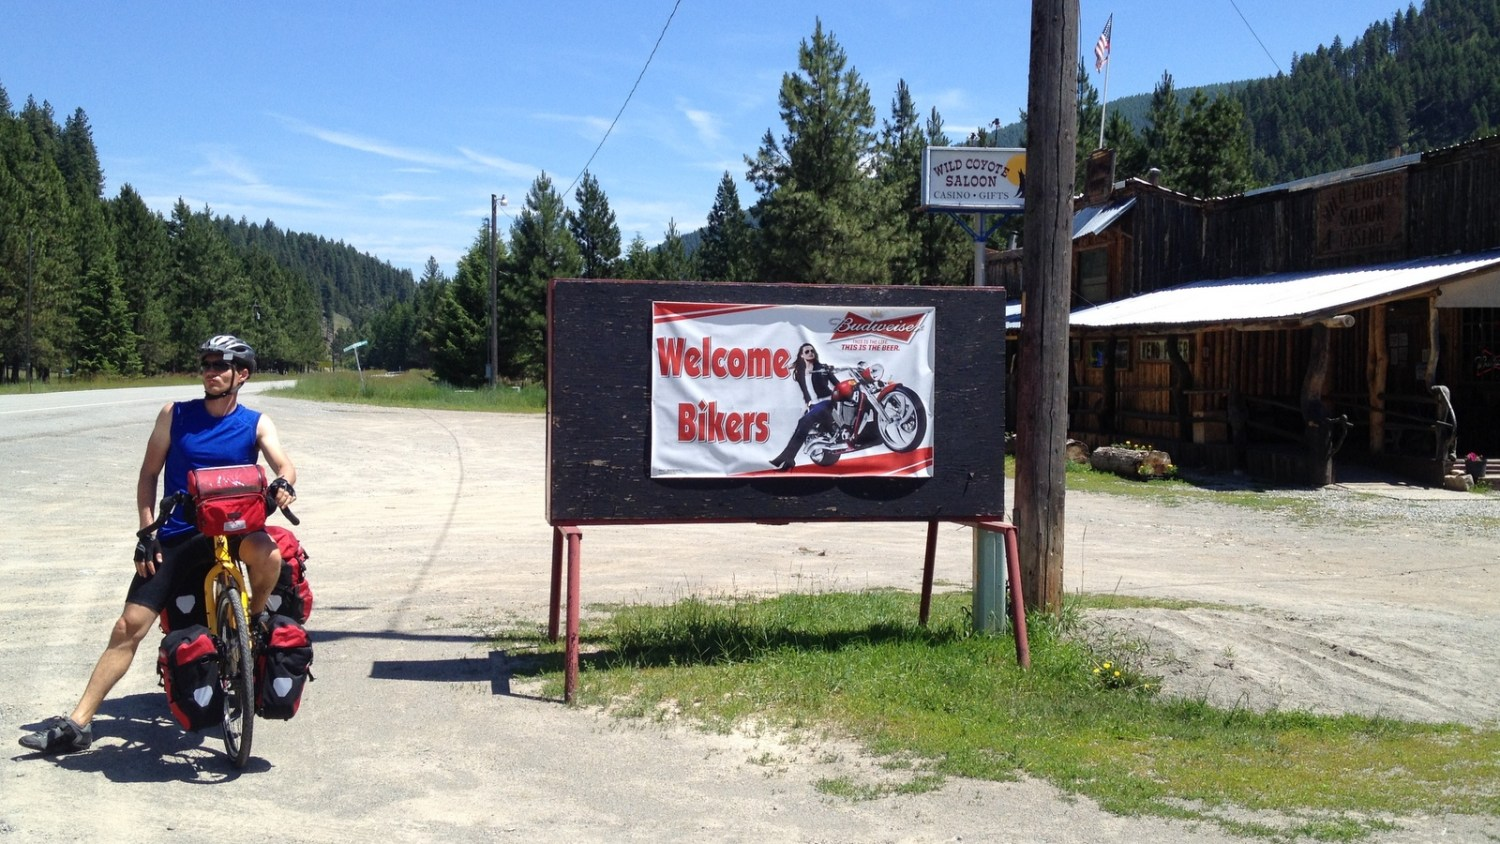 The Wild Coyote Saloon in Montana. Solid food and nice cold refills for our water bottles. (C photo)